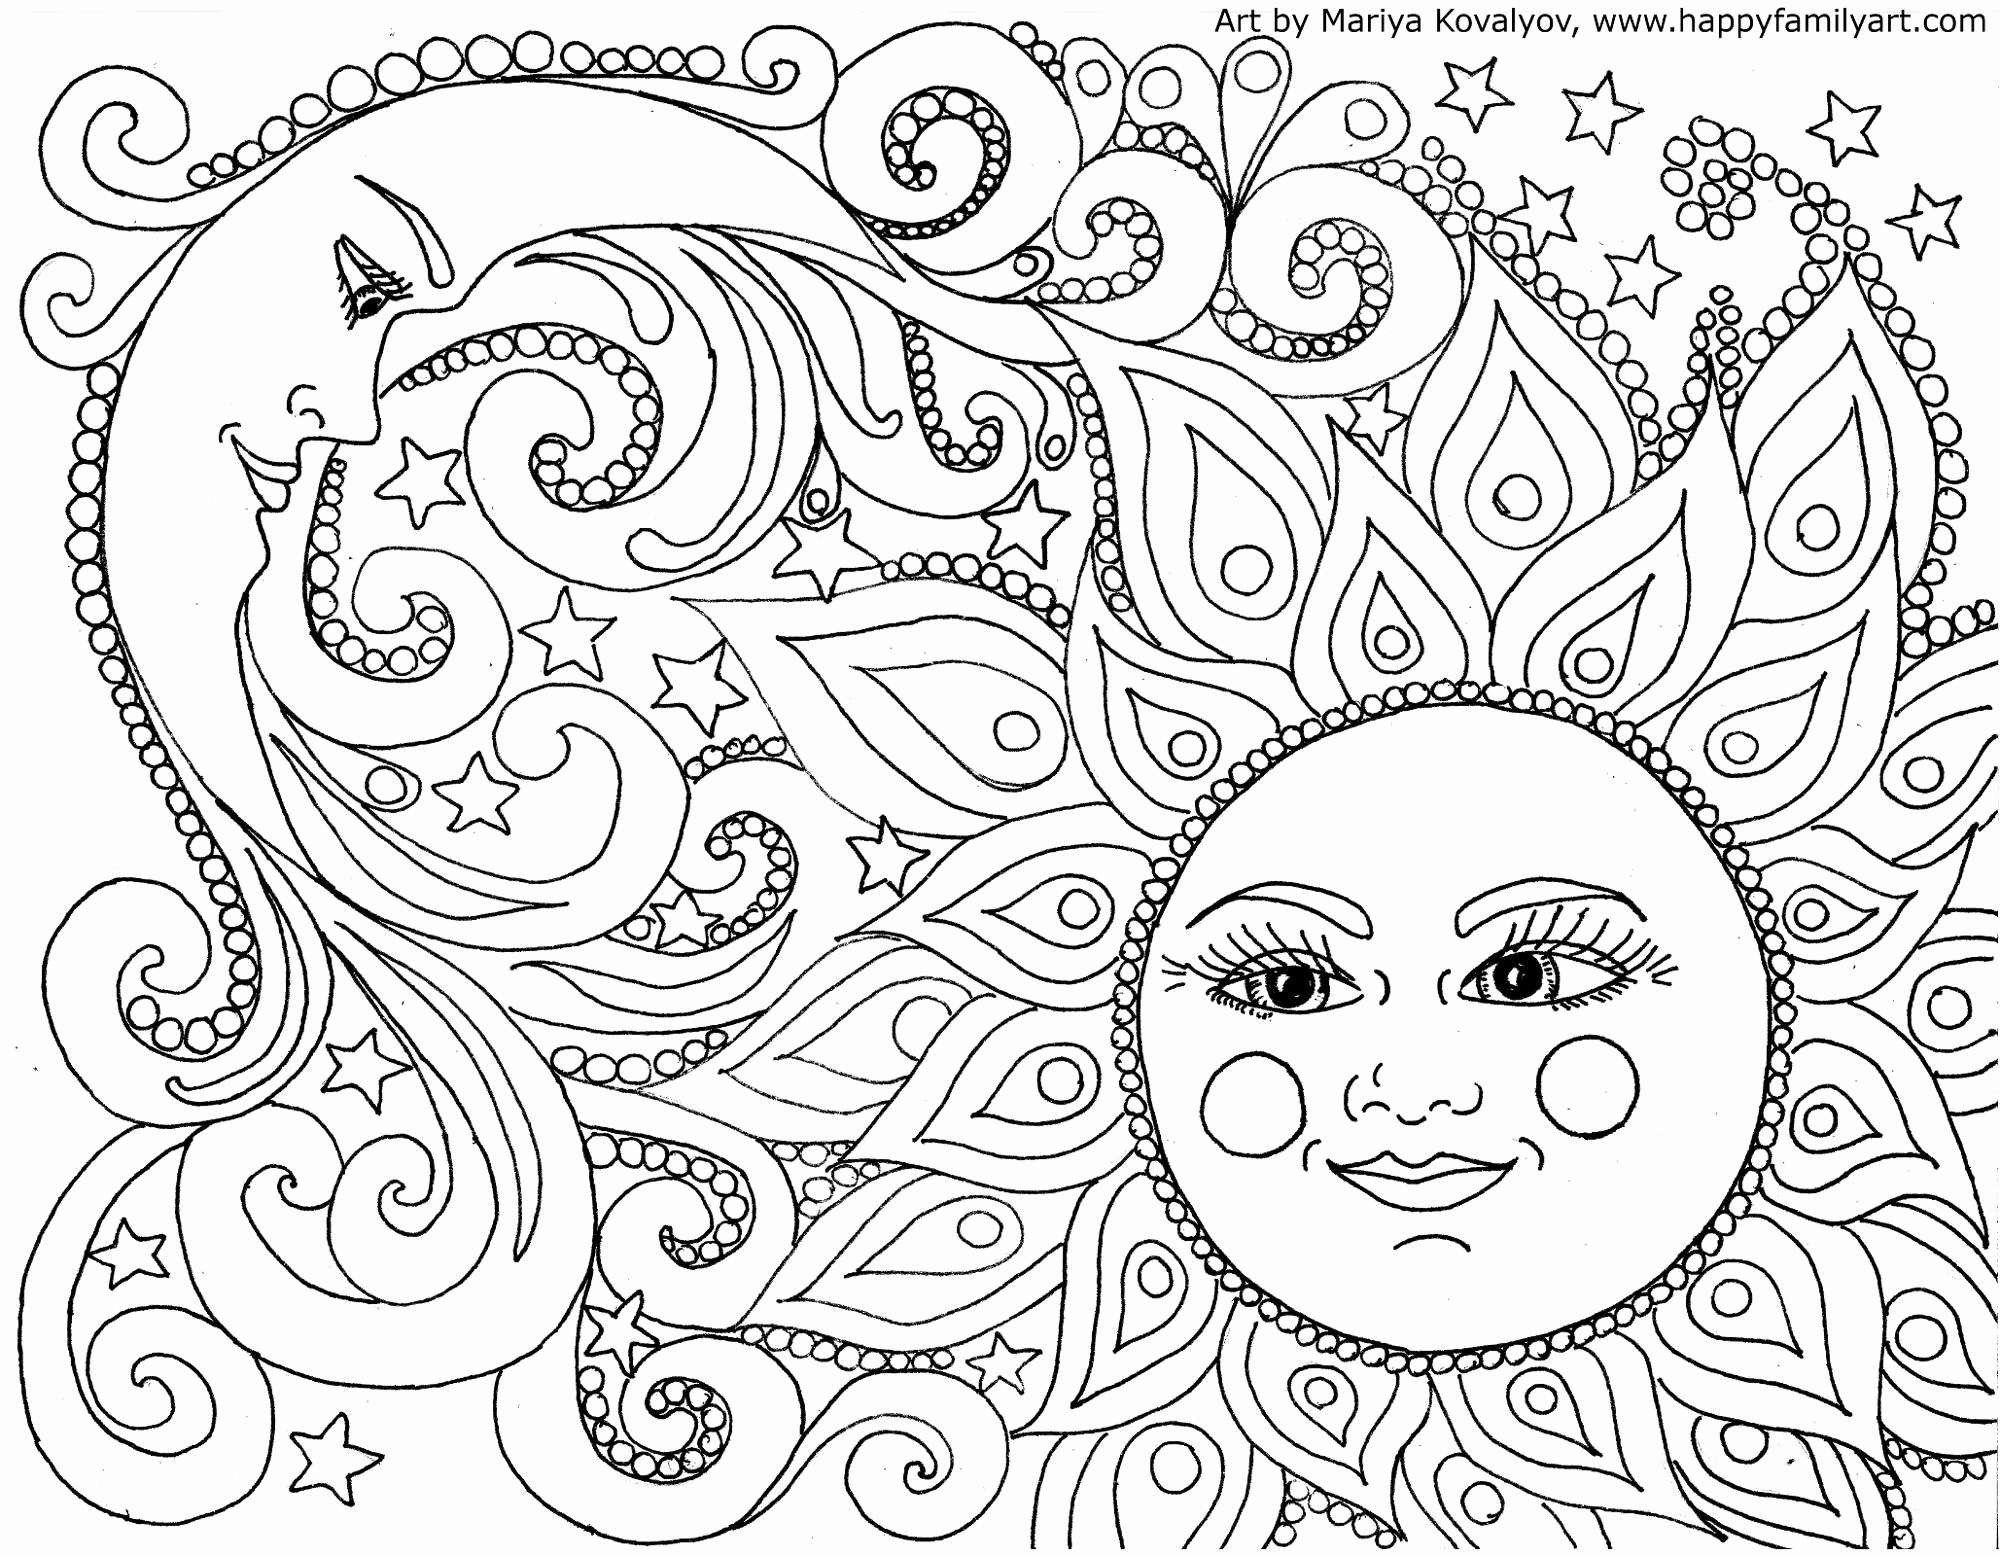 Pin On My Favorite Coloring Pages Ideas Lauren Scollen